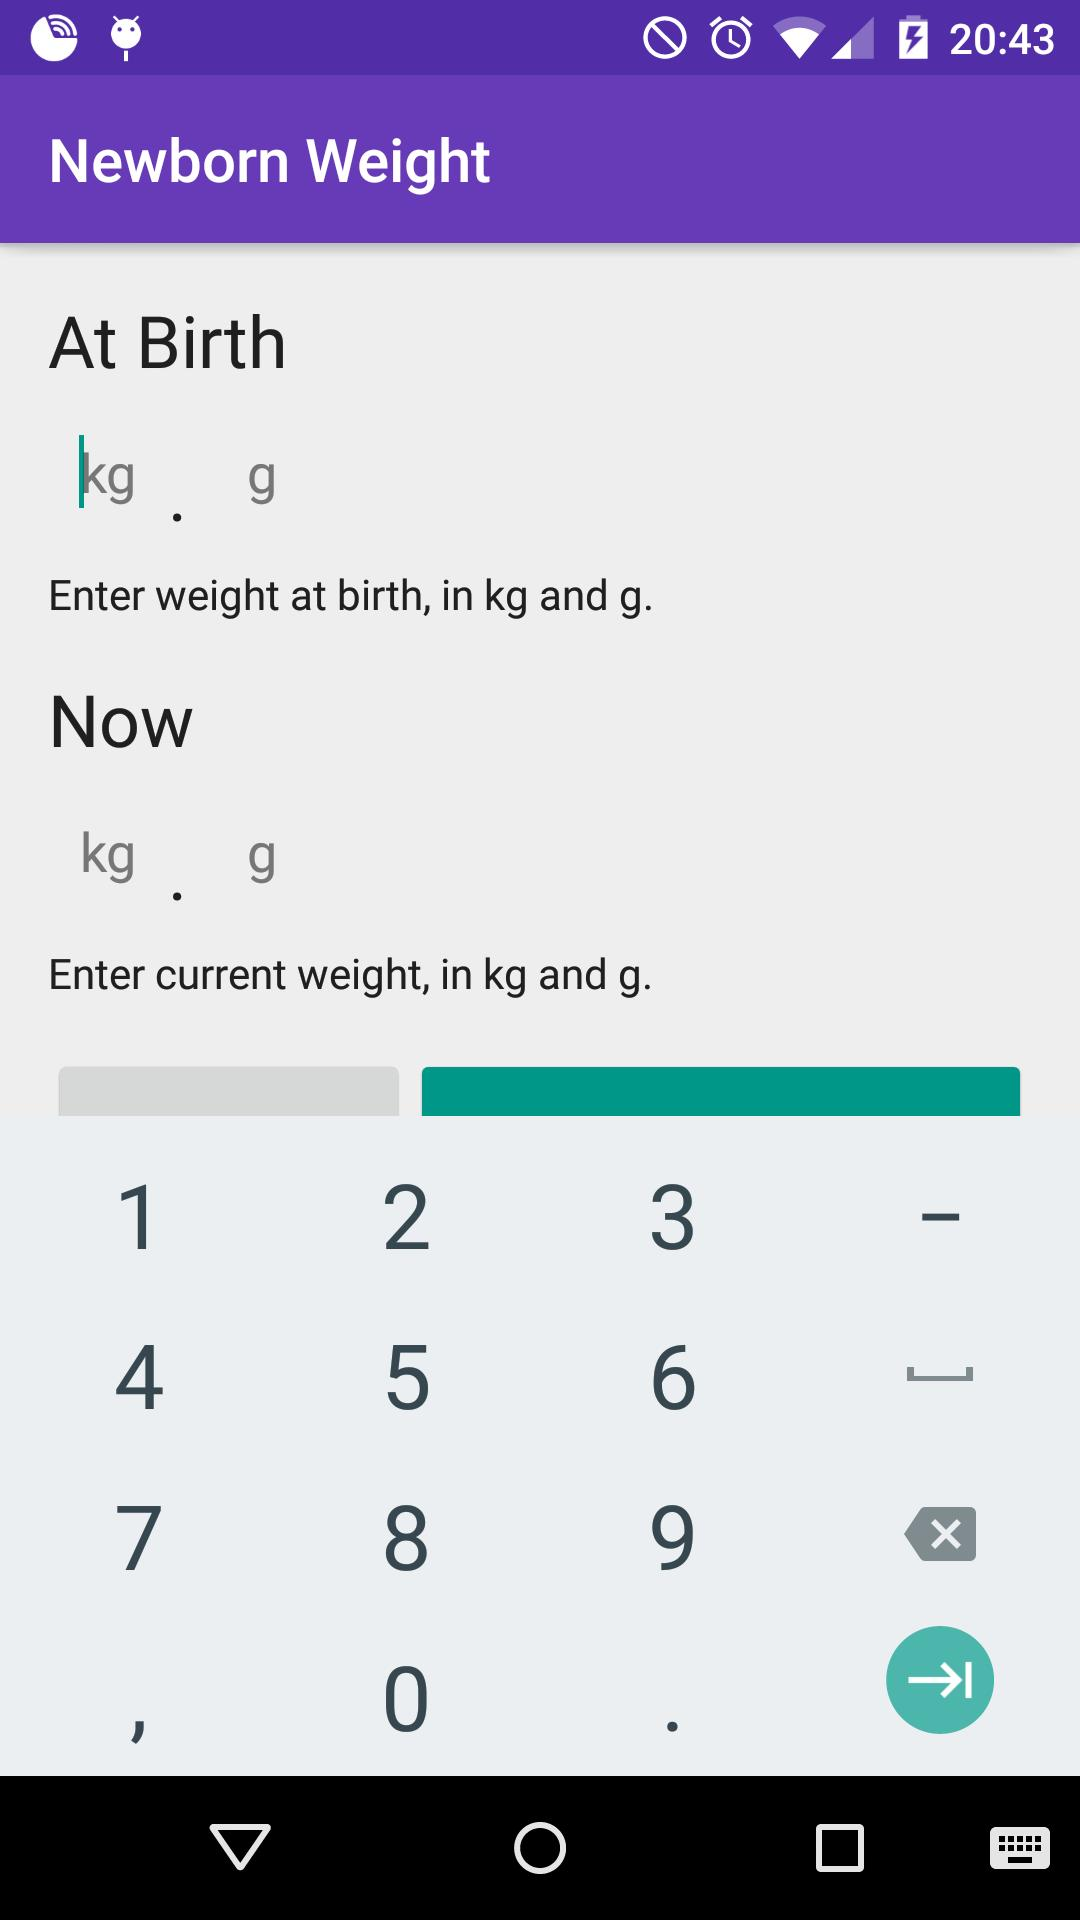 Newborn Baby Weight Loss / Weight Gain Calculator for